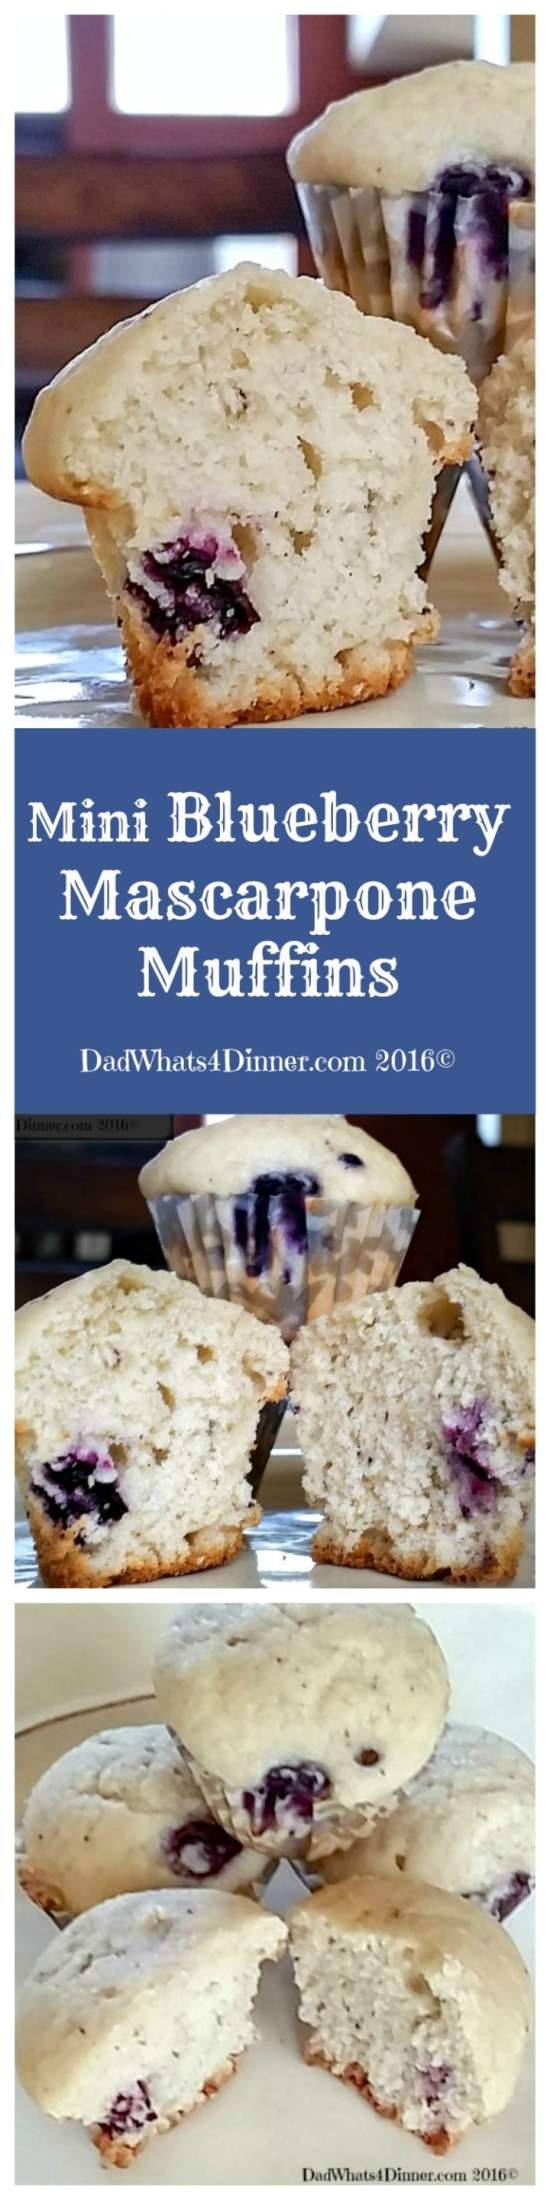 My Blueberry Mascarpone Muffins are extra creamy and perfect for breakfast, brunch or an afternoon snack!